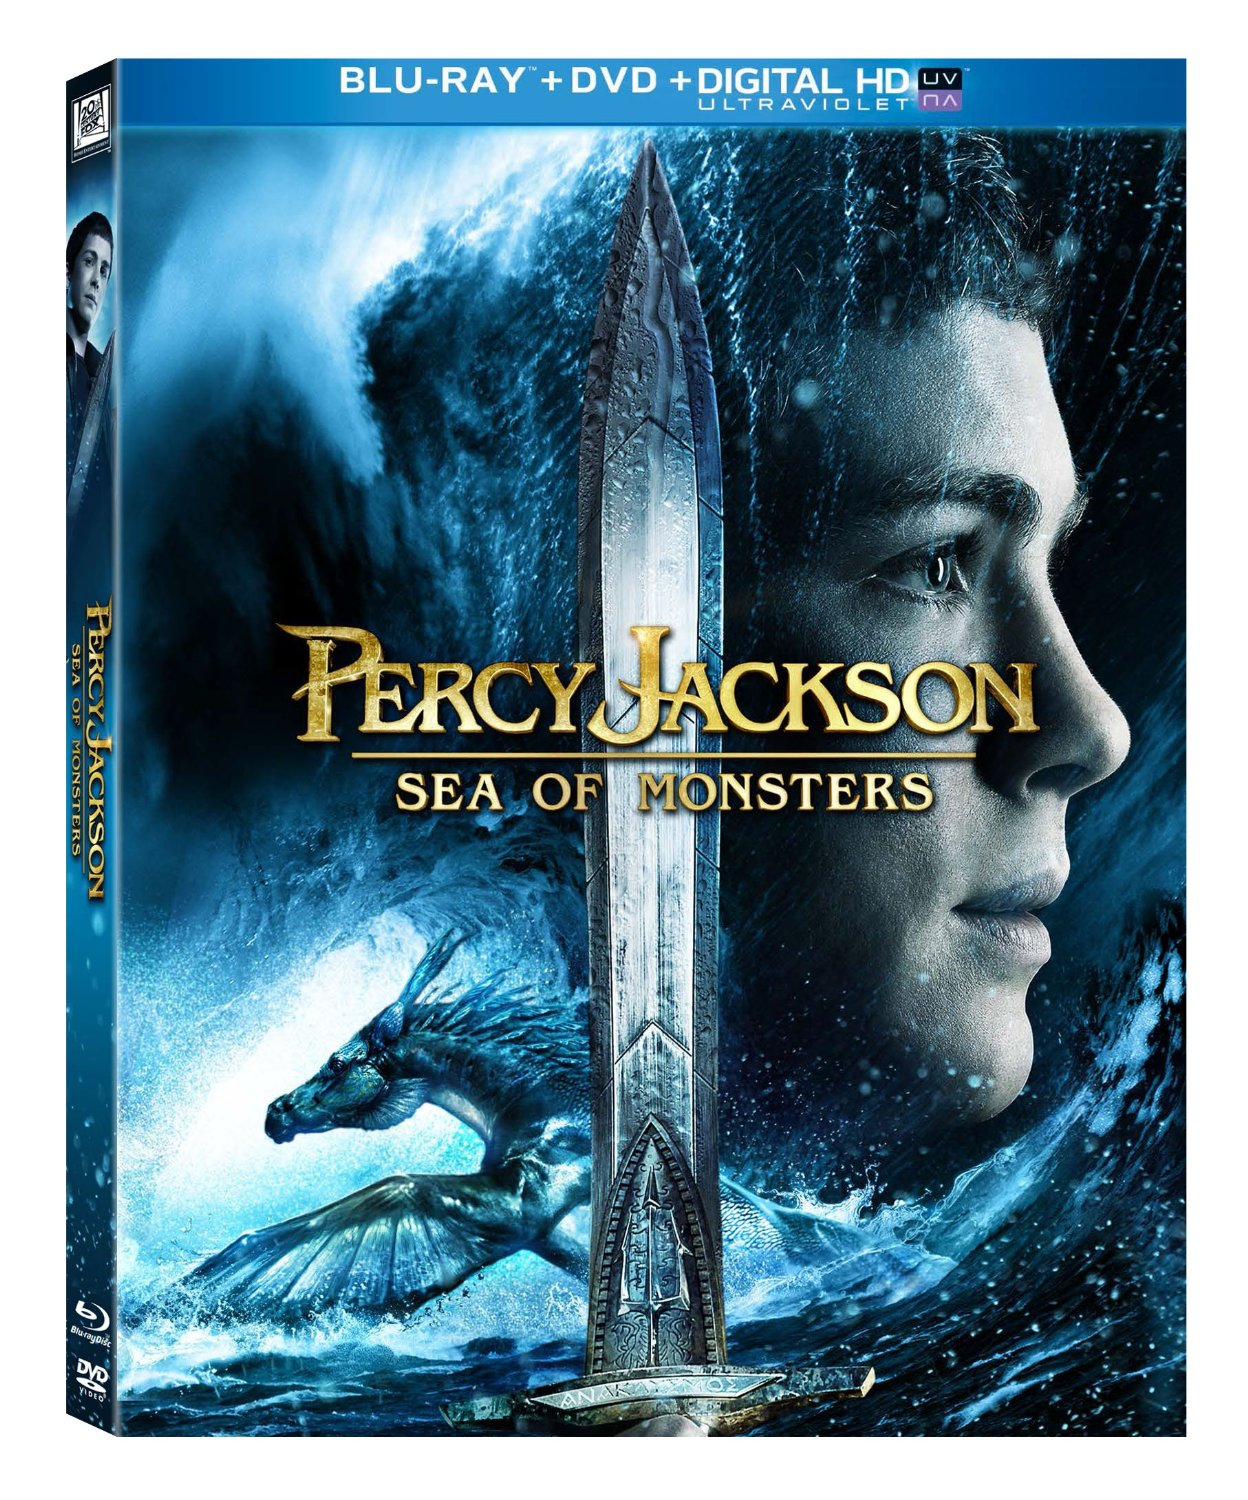 the sea of monsters Description: in order to restore their dying safe haven, the son of poseidon and his friends embark on a quest to the sea of monsters to find the mythical golden fleece while trying to stop an ancient evil from rising.